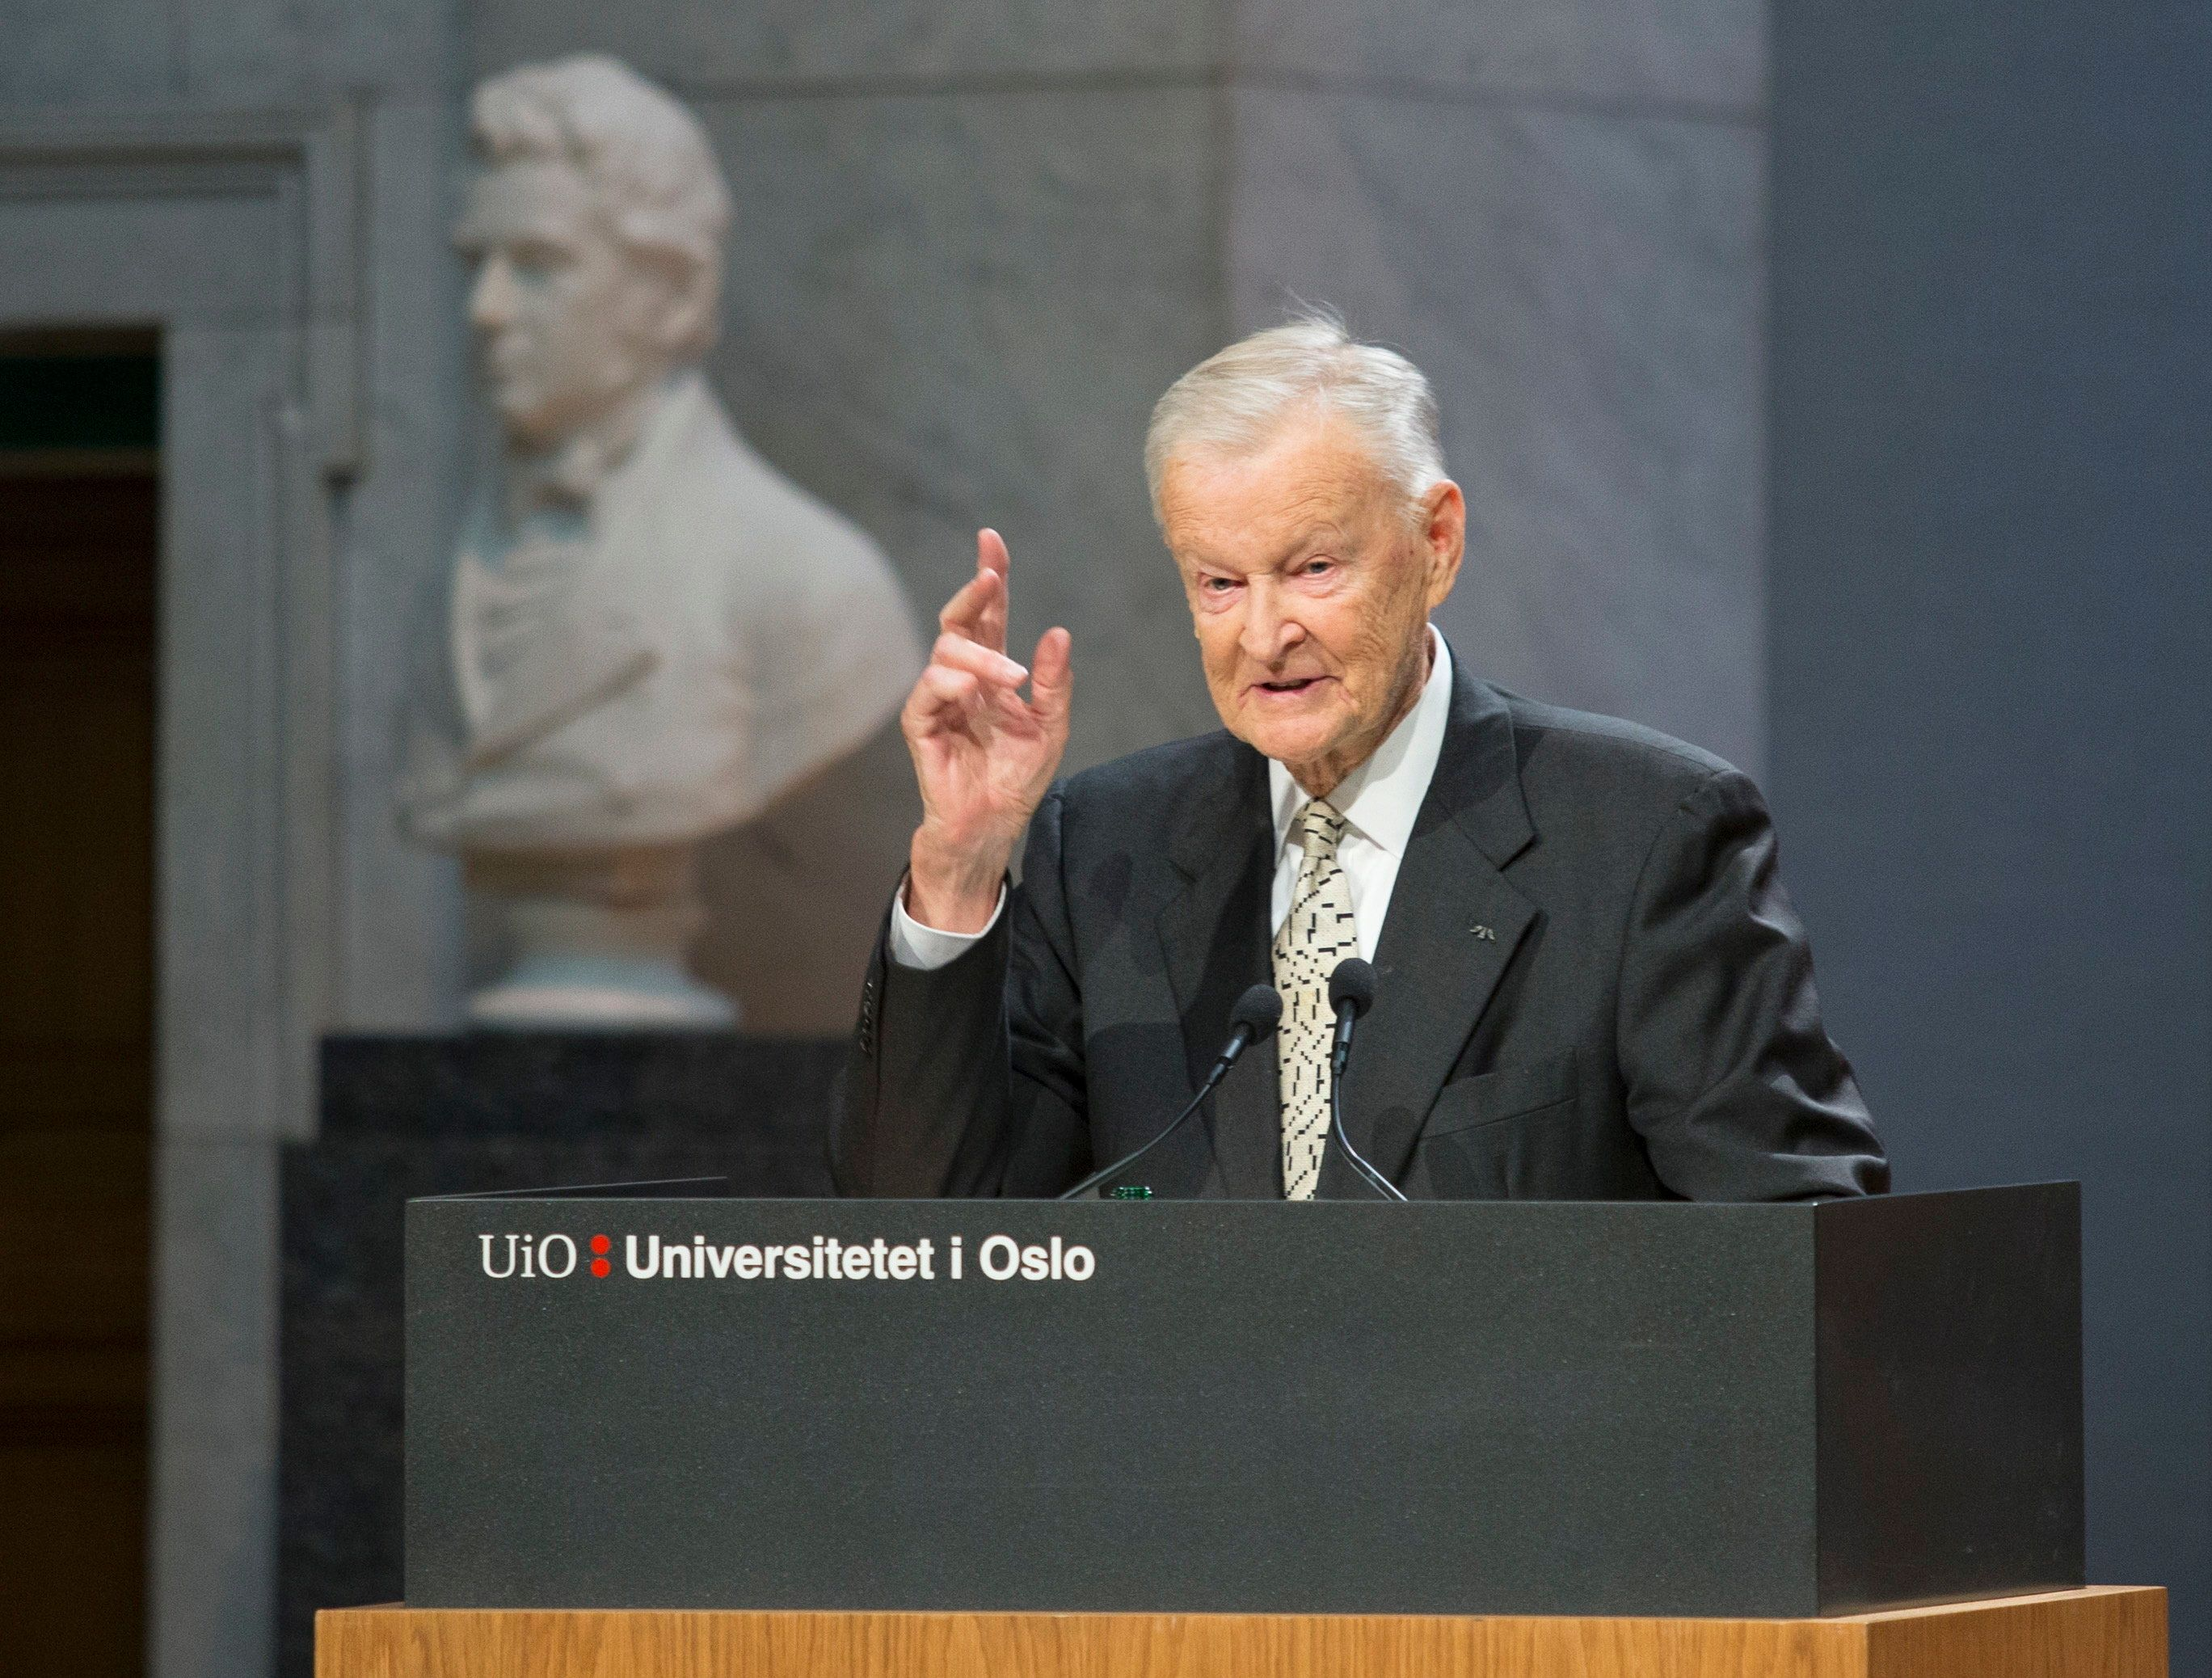 Former US National Security Advisor Zbigniew Brzezinski speaks at the Nobel Peace Prize Forum in Oslo December 11, 2016. / AFP / NTB Scanpix / Terje BENDIKSBY / Norway OUT        (Photo credit should read TERJE BENDIKSBY/AFP/Getty Images)